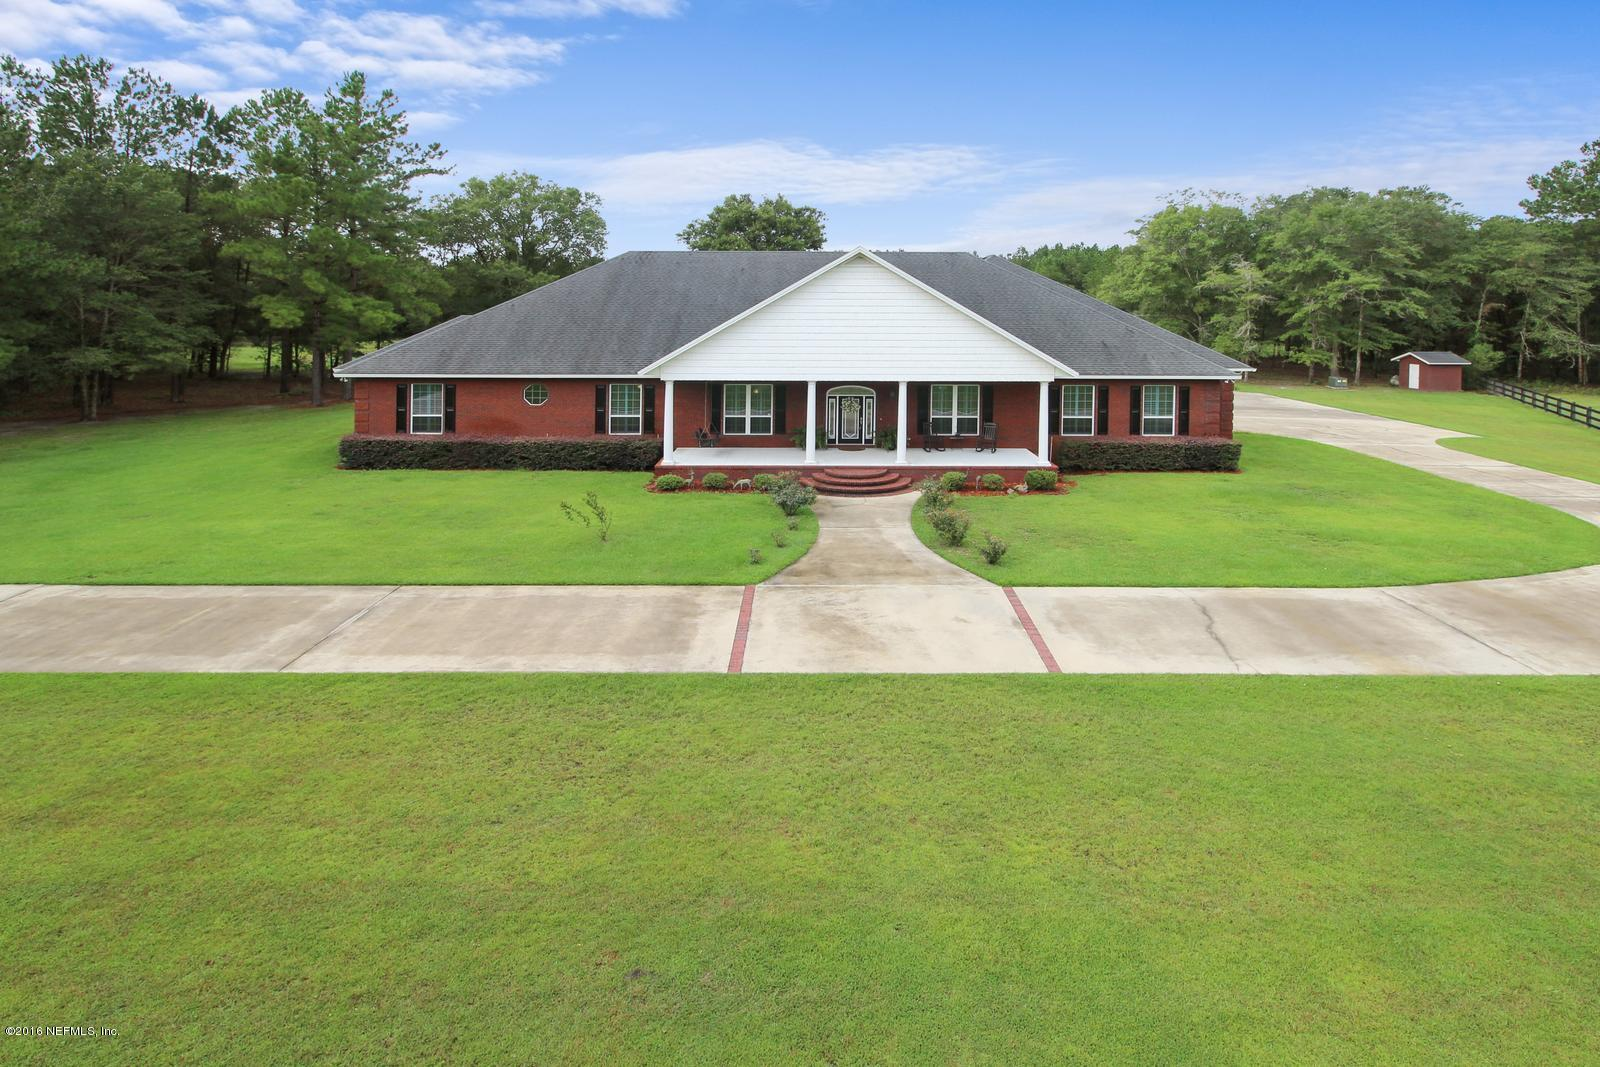 8140 NO ROAD, MACCLENNY, FLORIDA 32063-7526, 5 Bedrooms Bedrooms, ,6 BathroomsBathrooms,Residential - single family,For sale,NO ROAD,840424